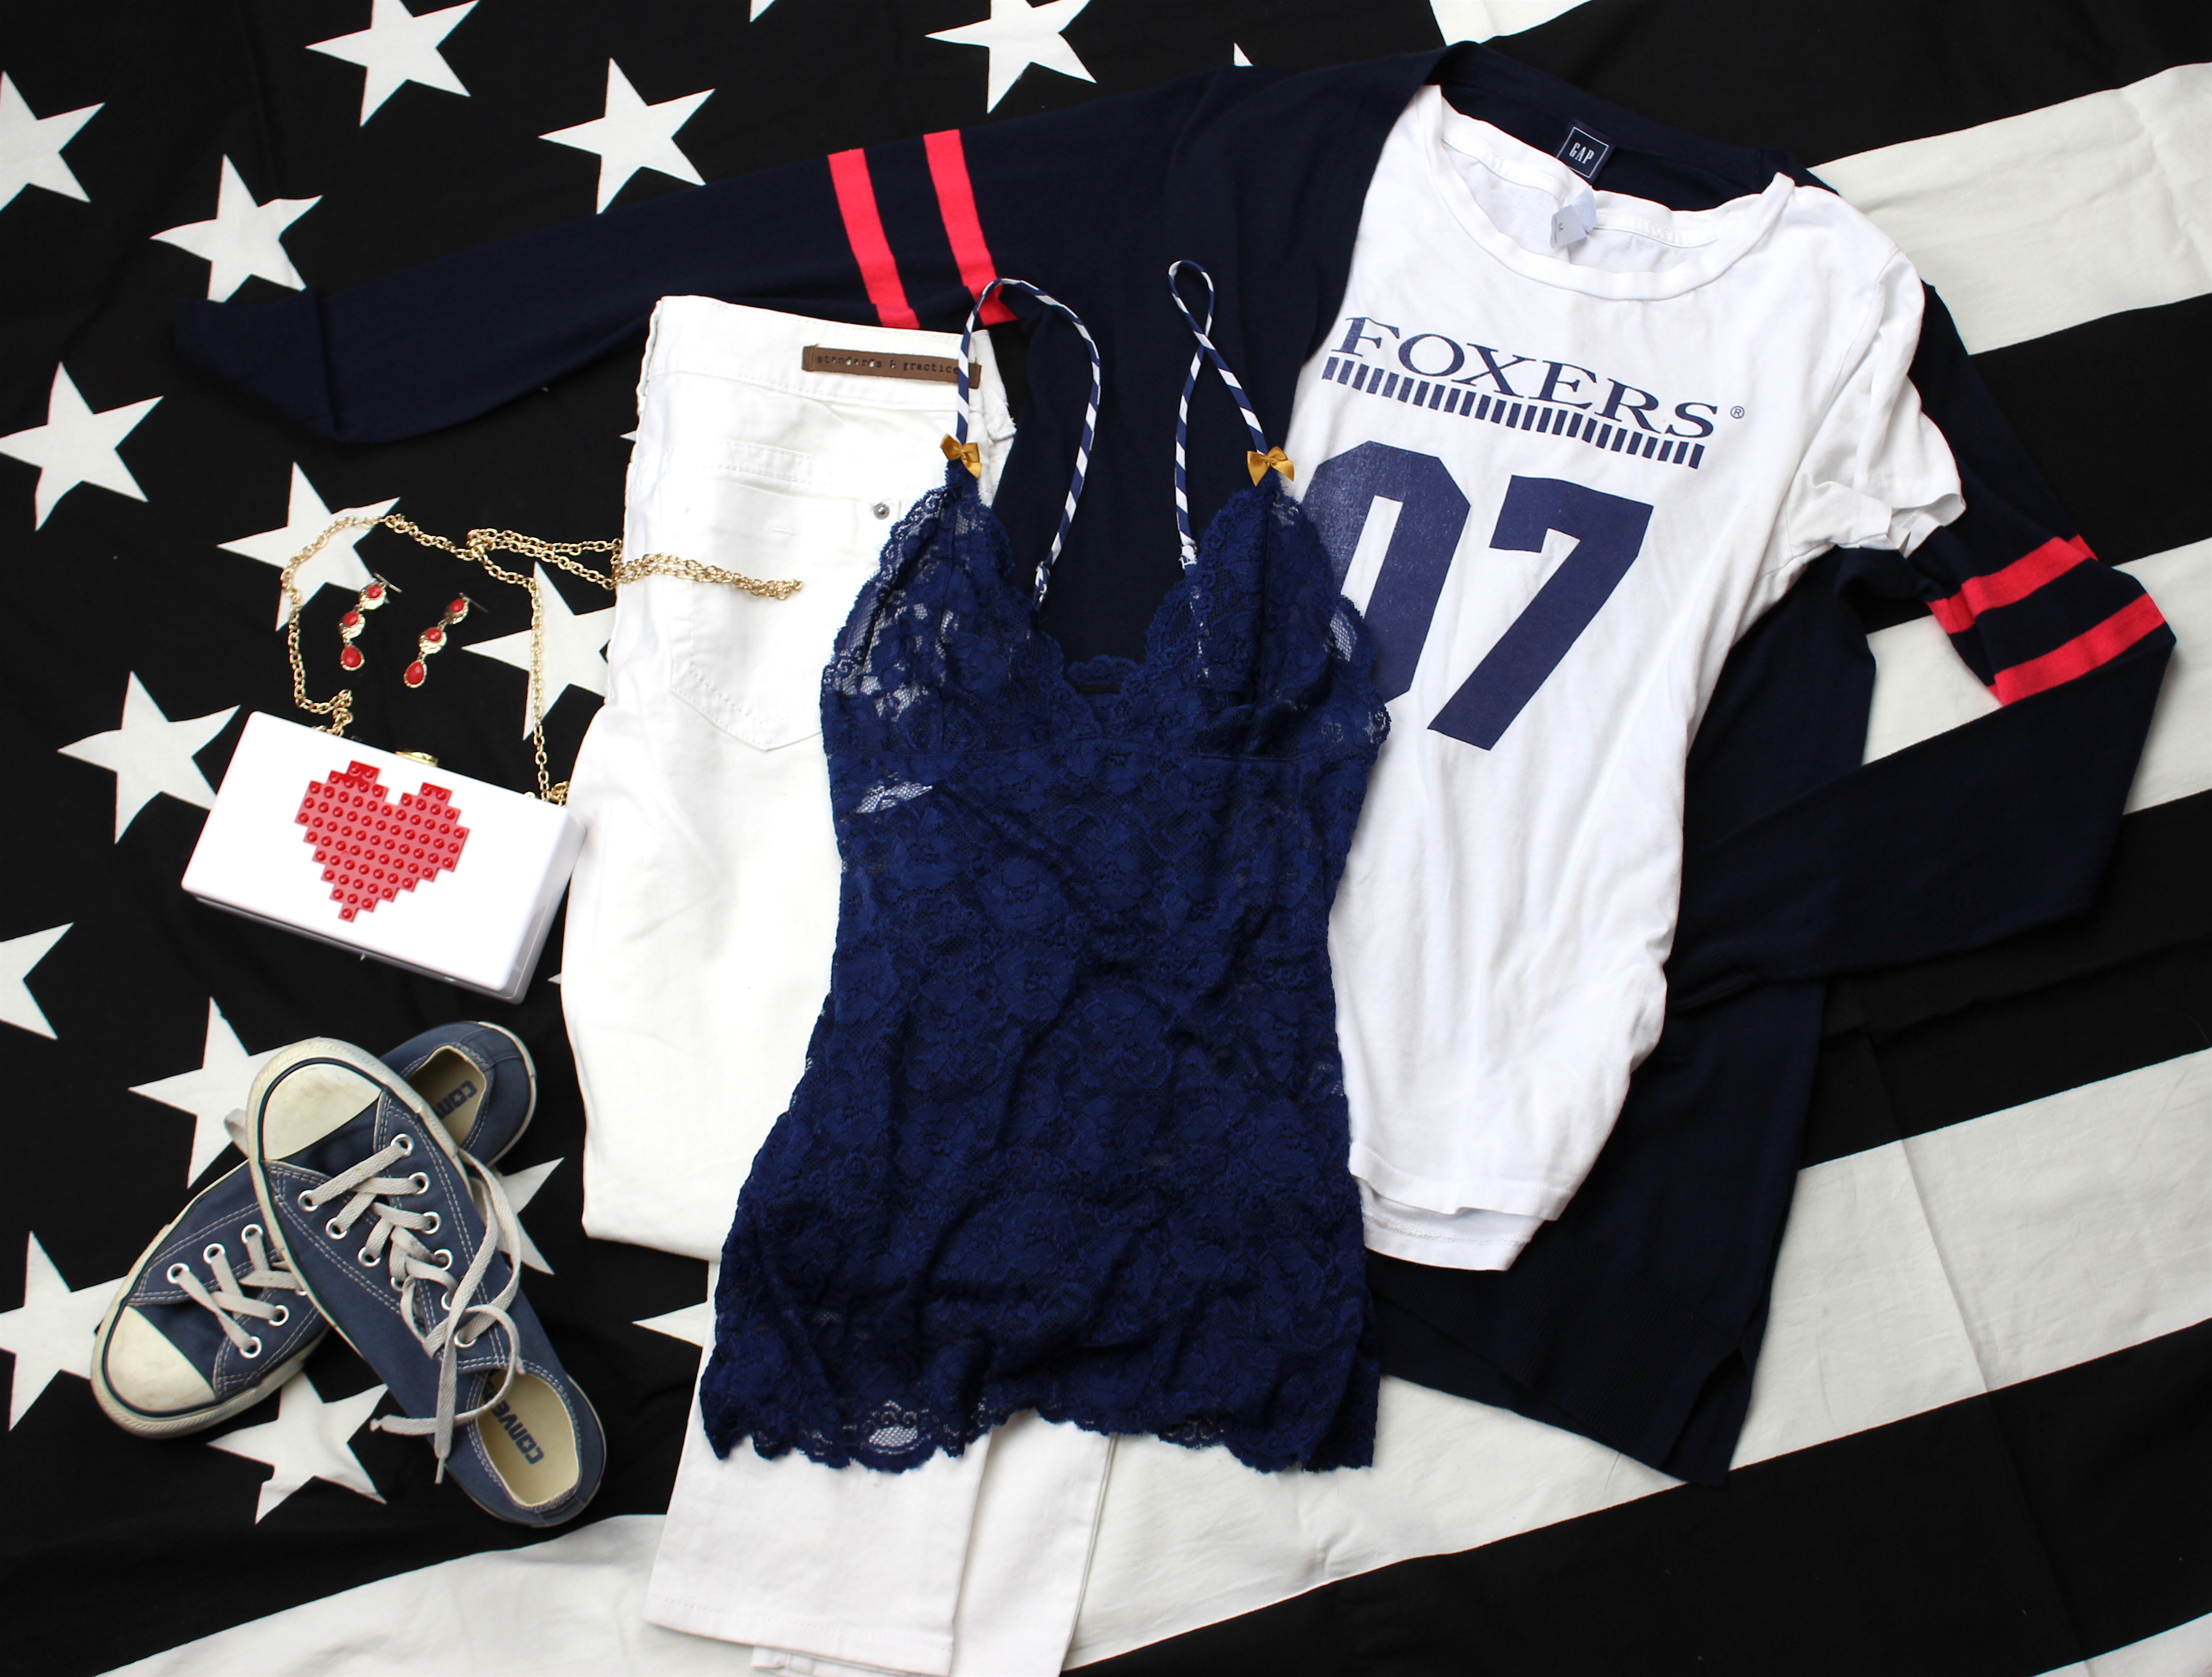 07 Foxers tee and navy lace camisole